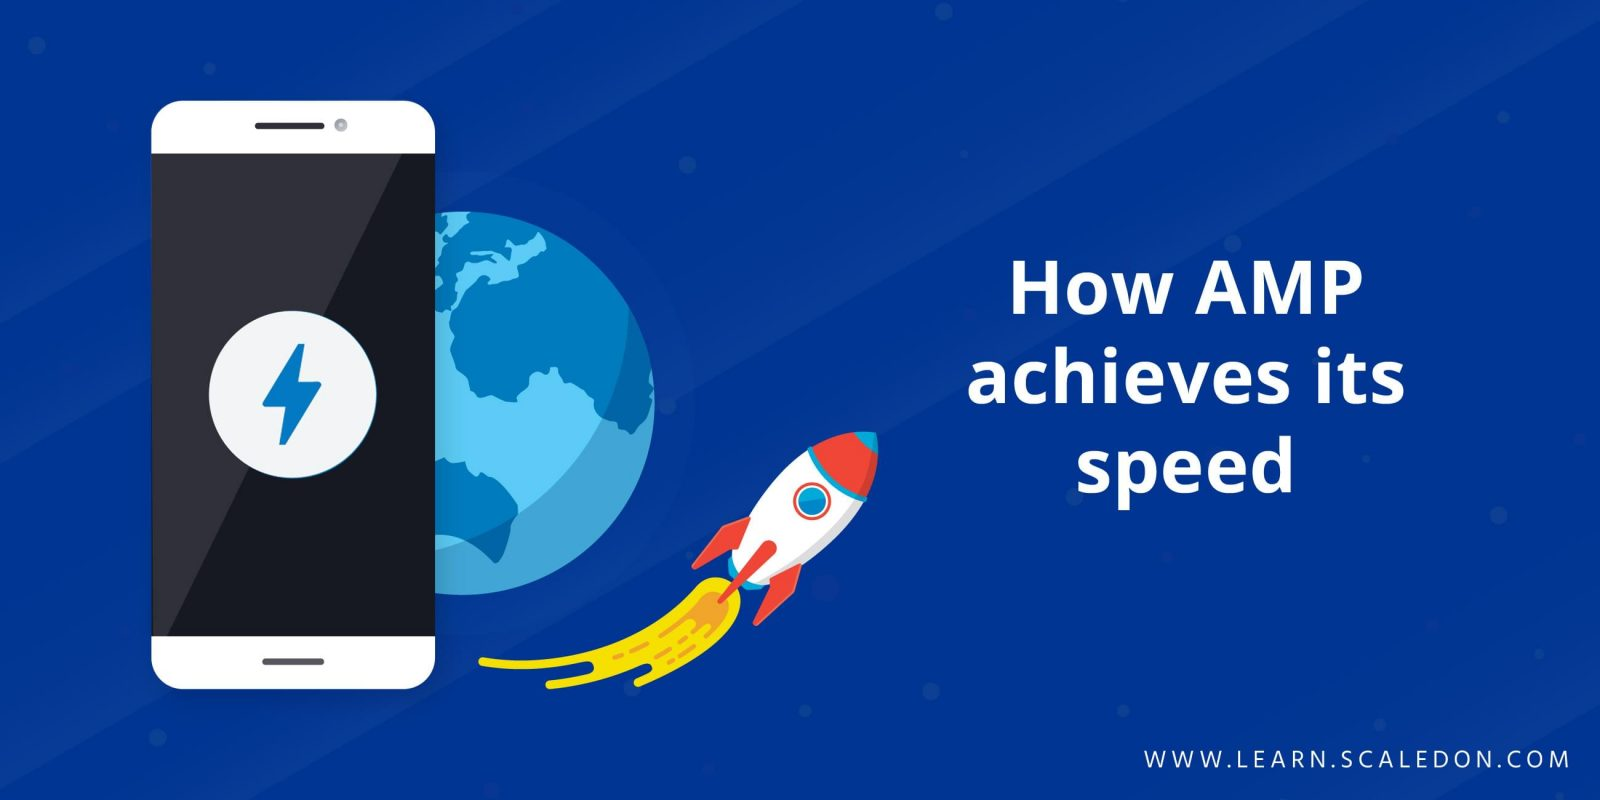 How AMP achieves its speed